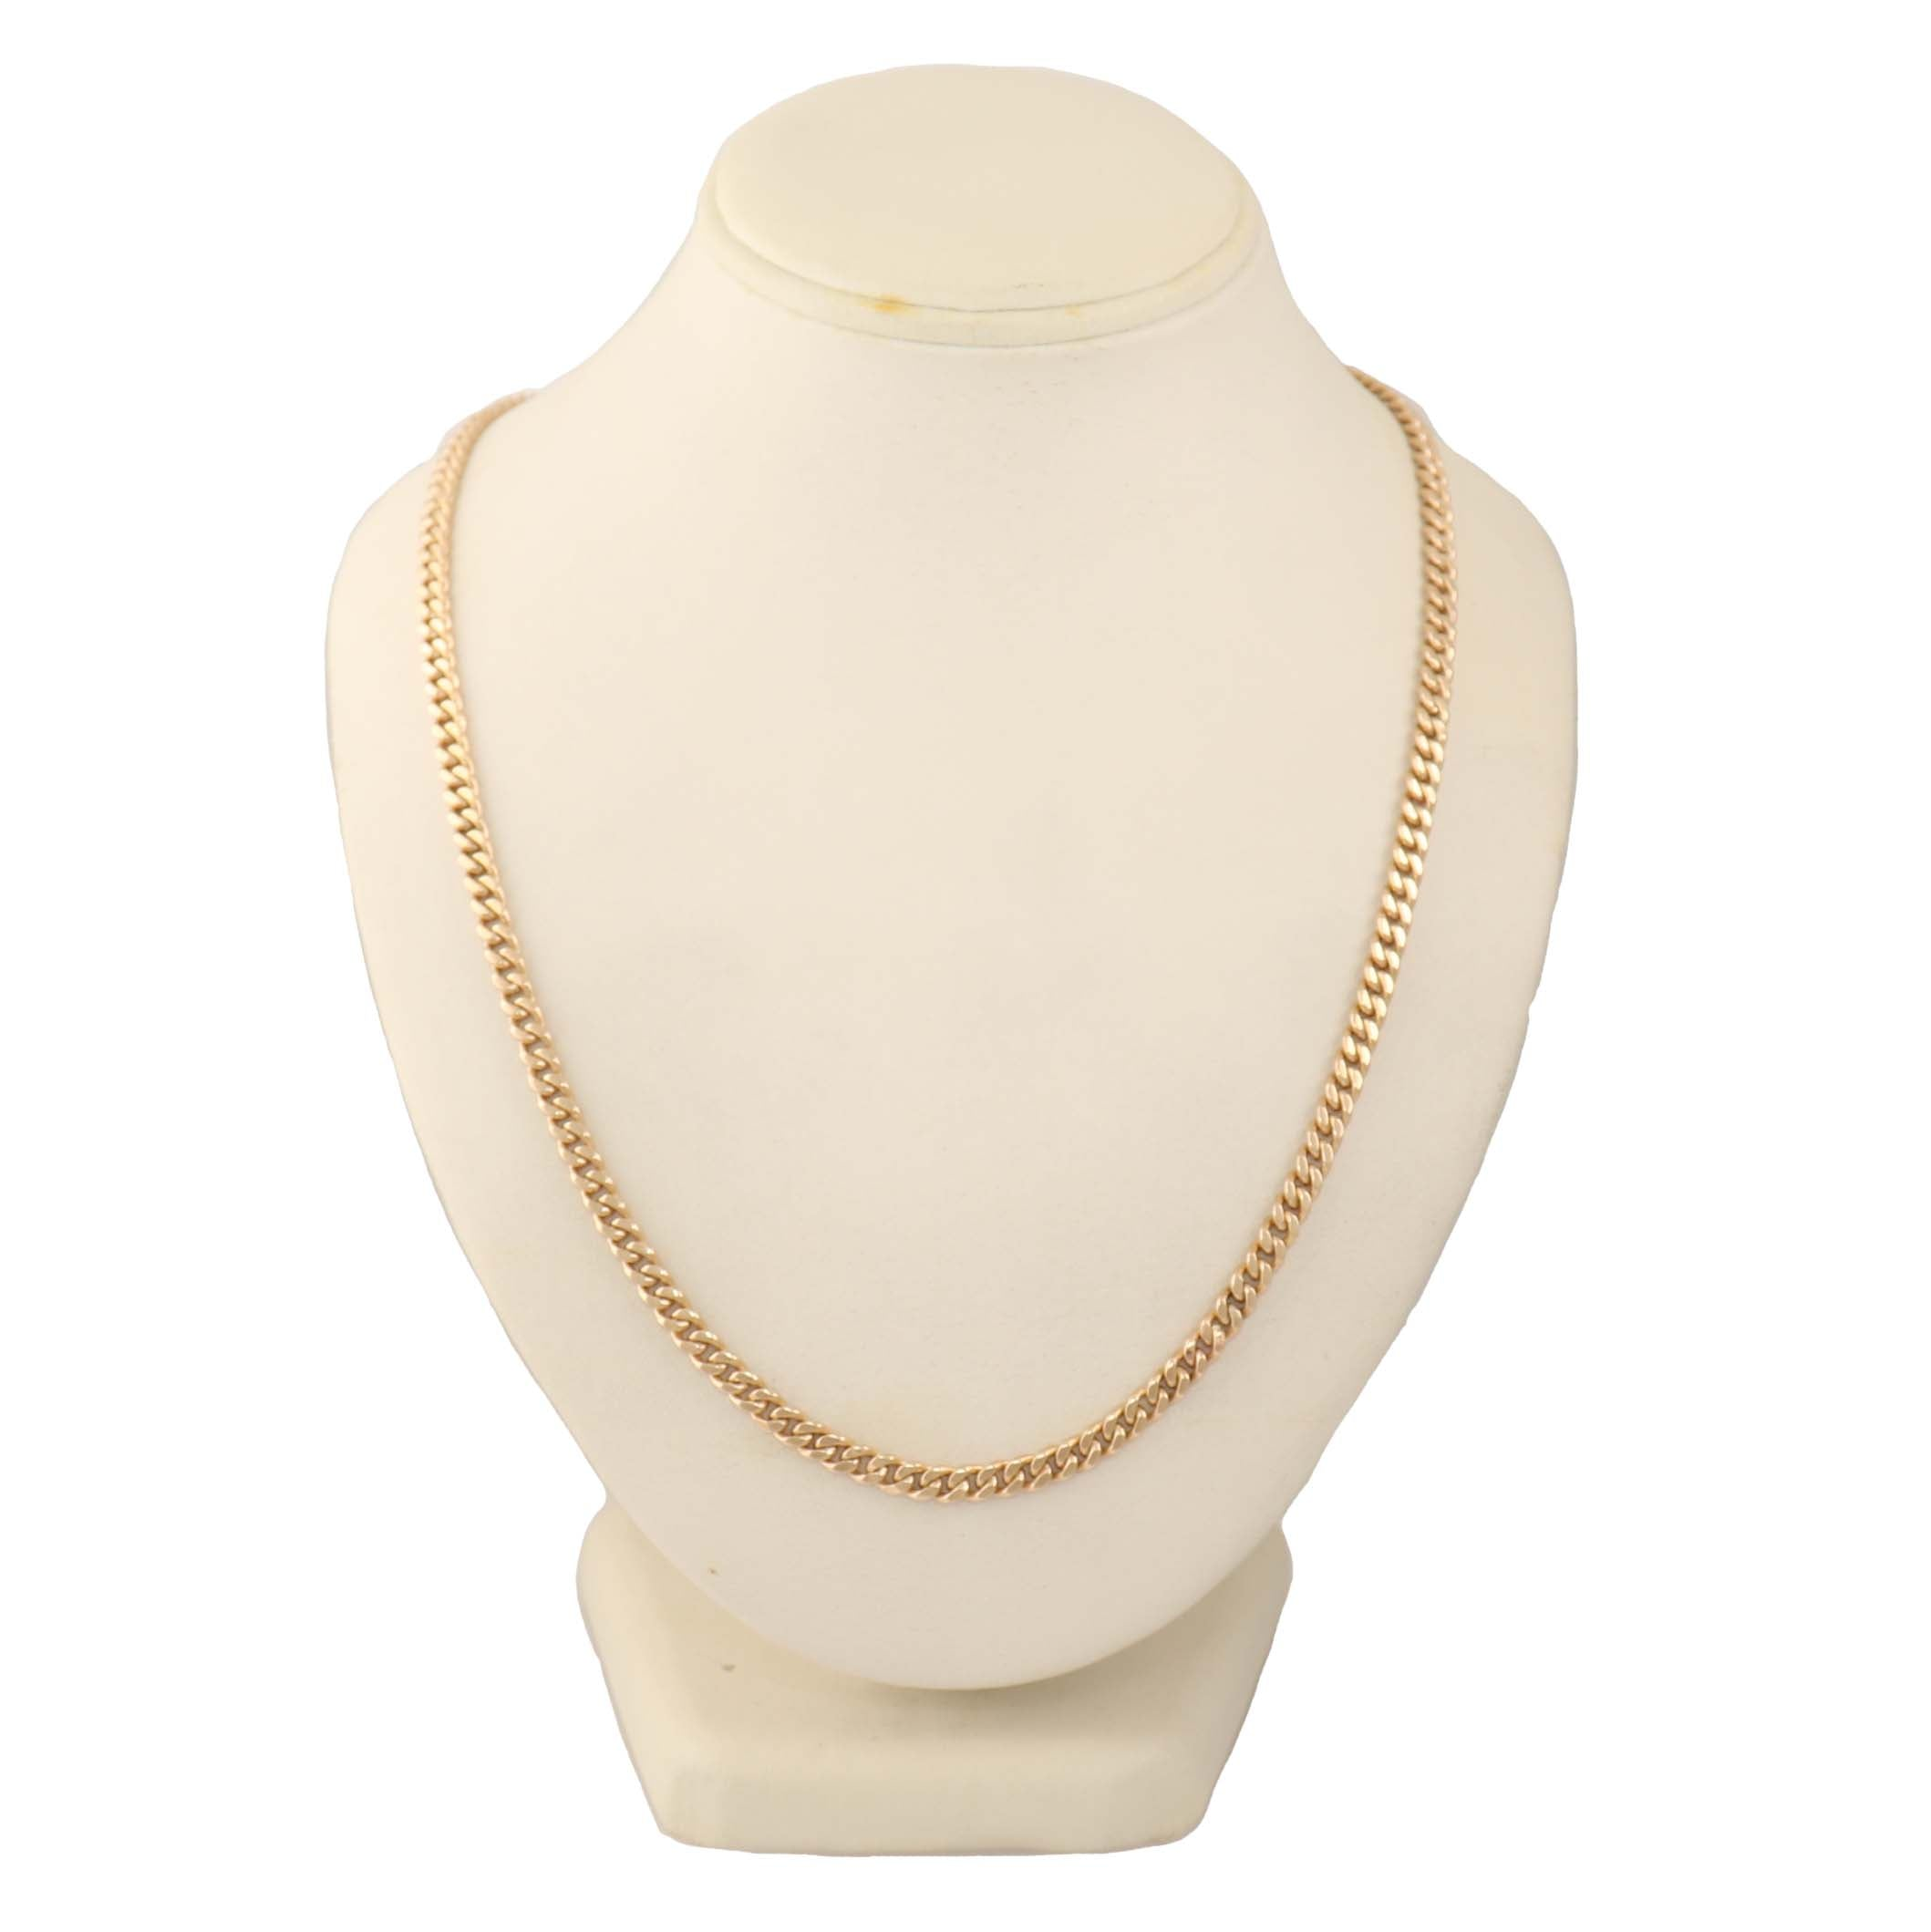 "Men's 14k Yellow Gold 36.40G Cuban Link 20.5"" Necklace"